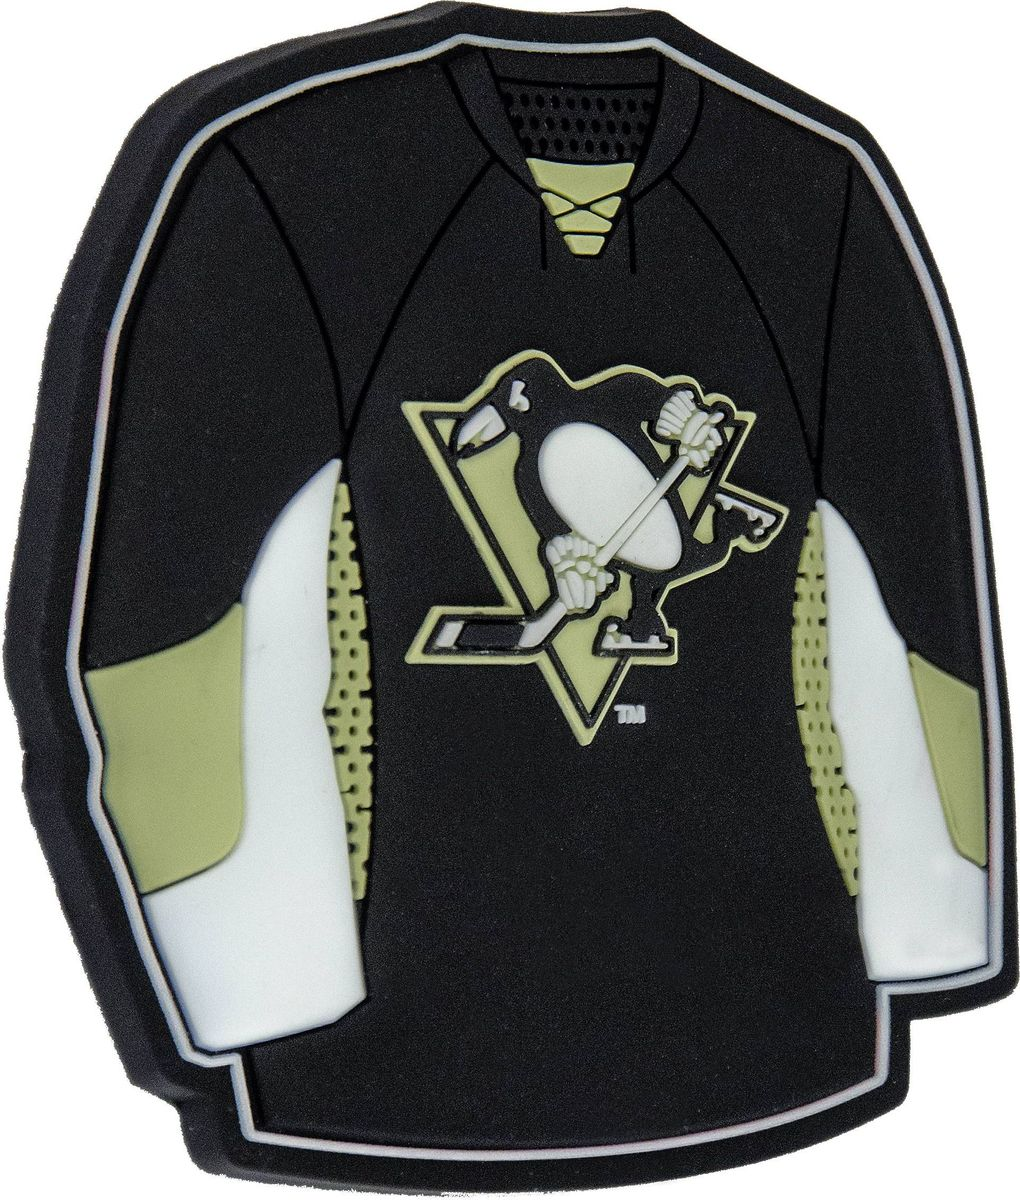 "Магнит Atributika & Club ""Pittsburgh Penguins"", цвет: черный, серый. 56011"